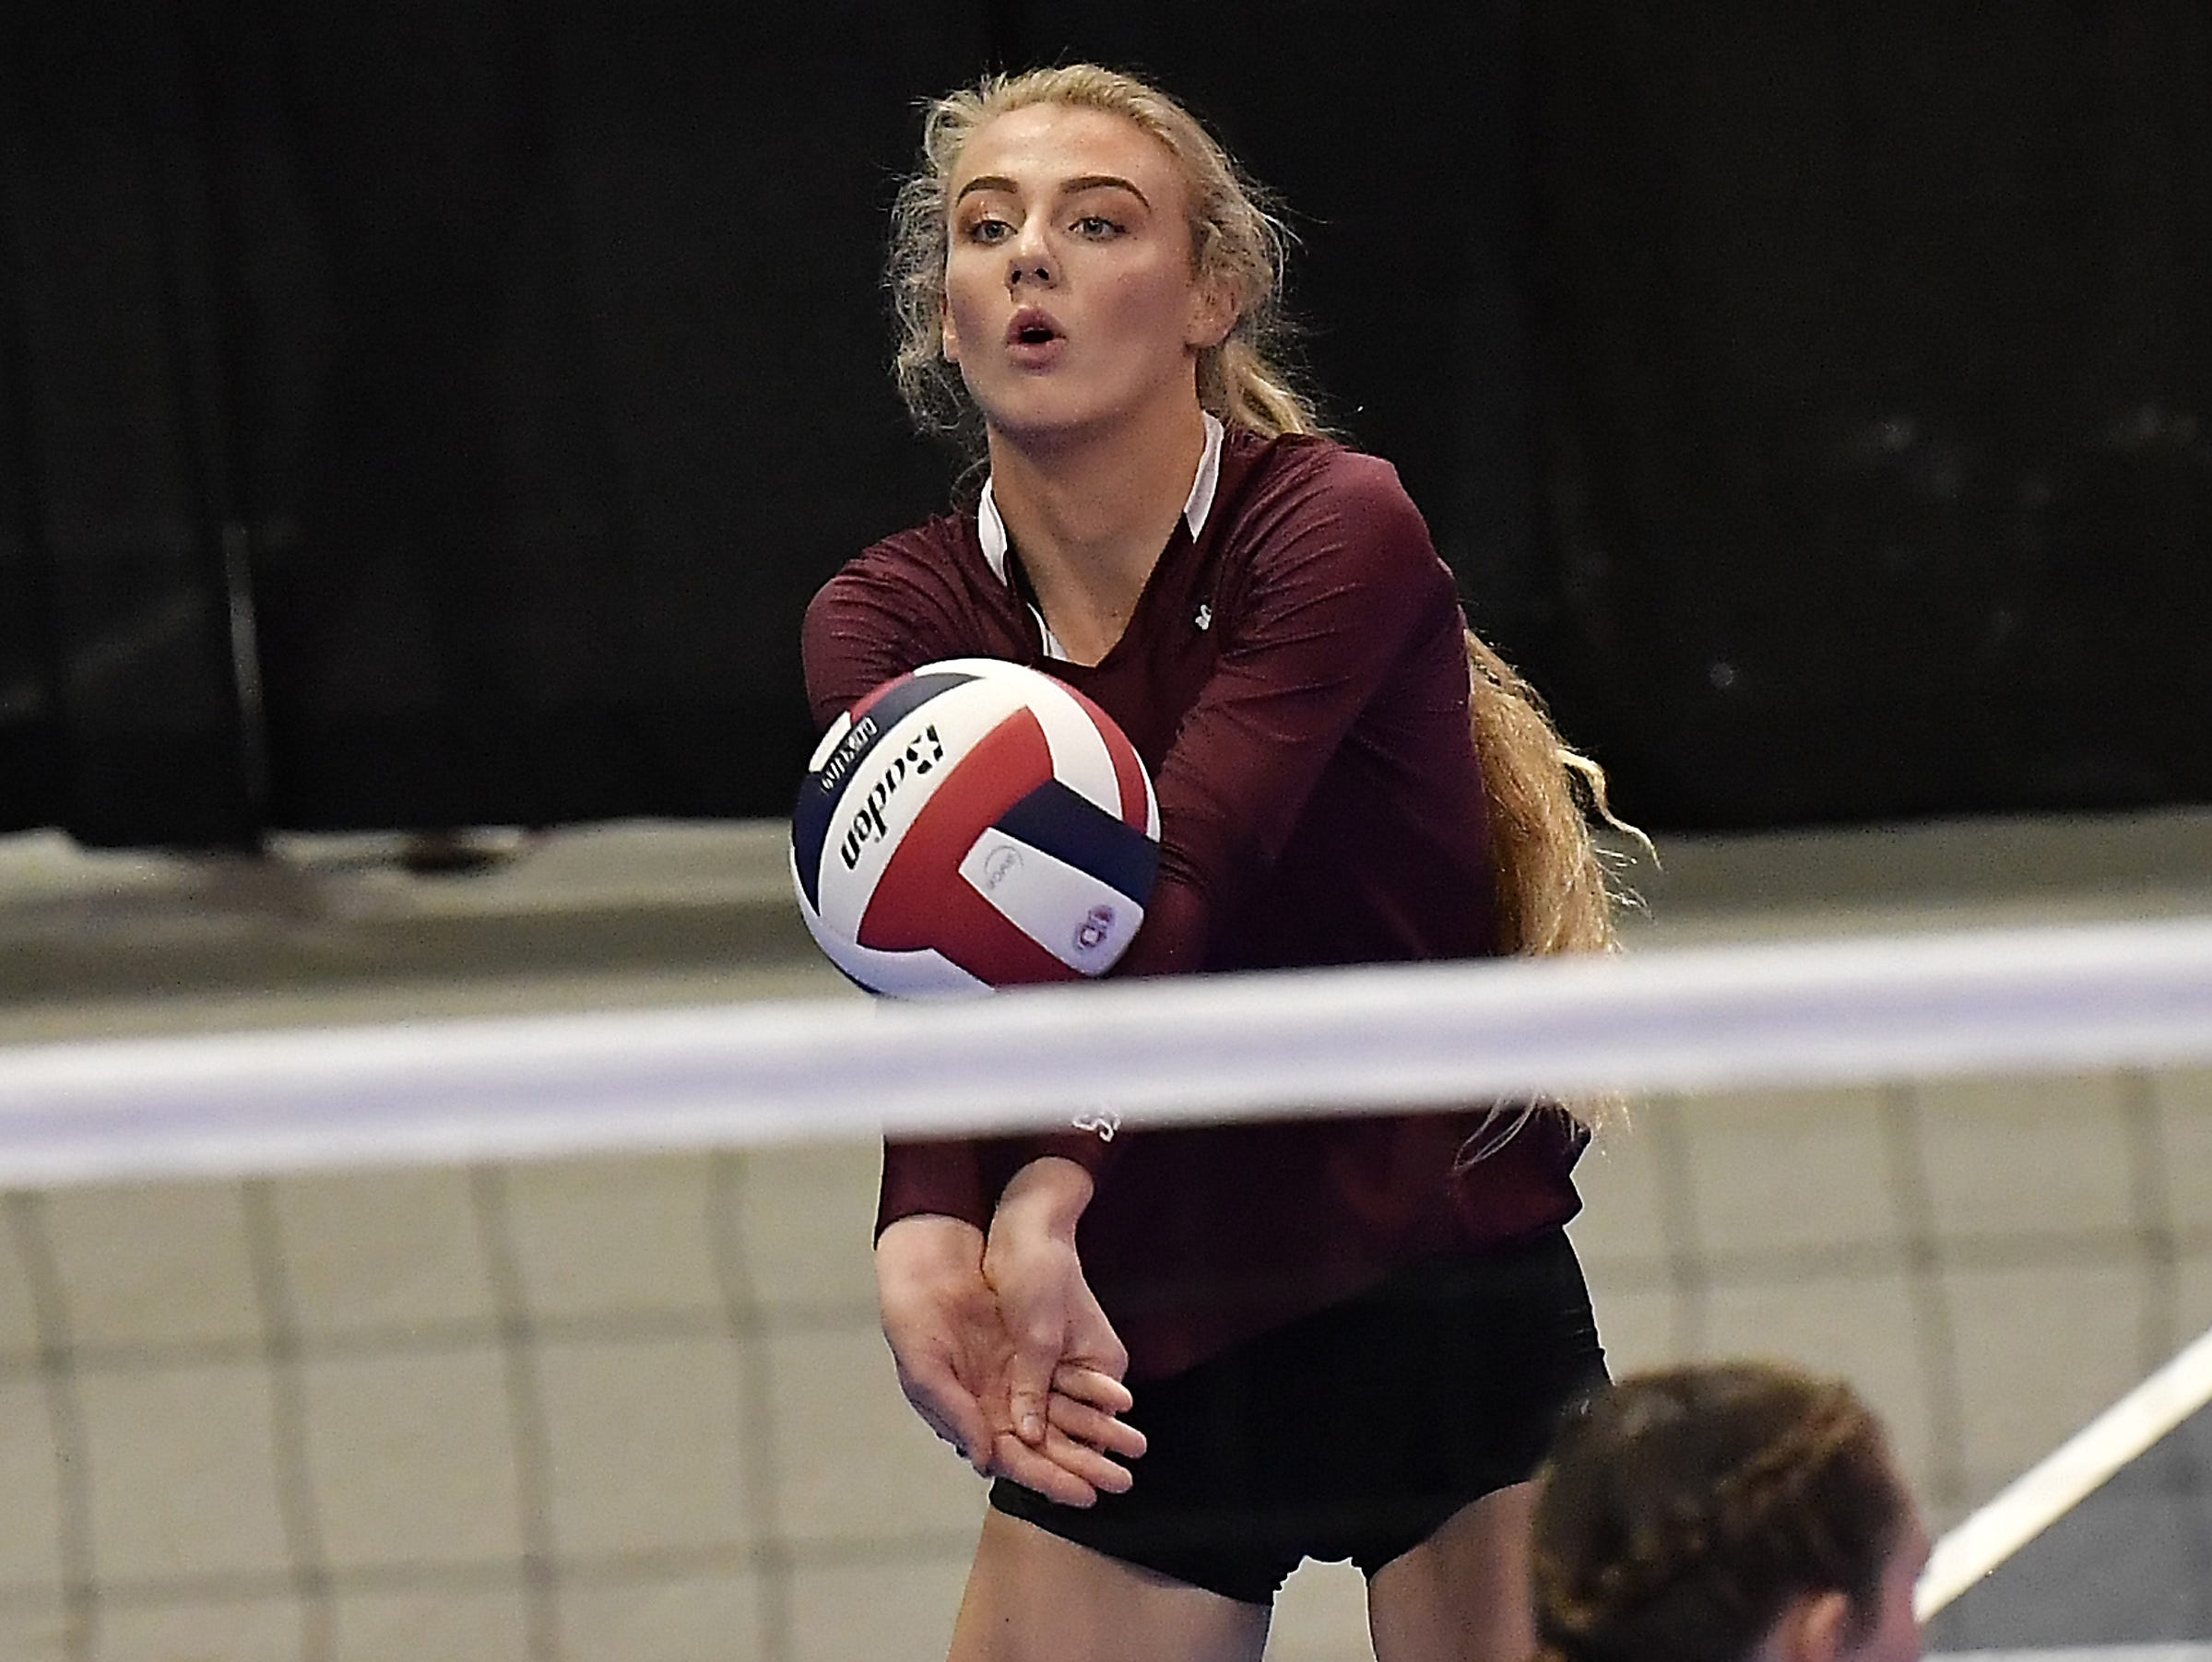 Wolf Point's Abby Juve makes a play on the ball in a match against Huntley Project at the All-Class State Volleyball Tournament at the Brick Breeden Fieldhouse in Bozeman.